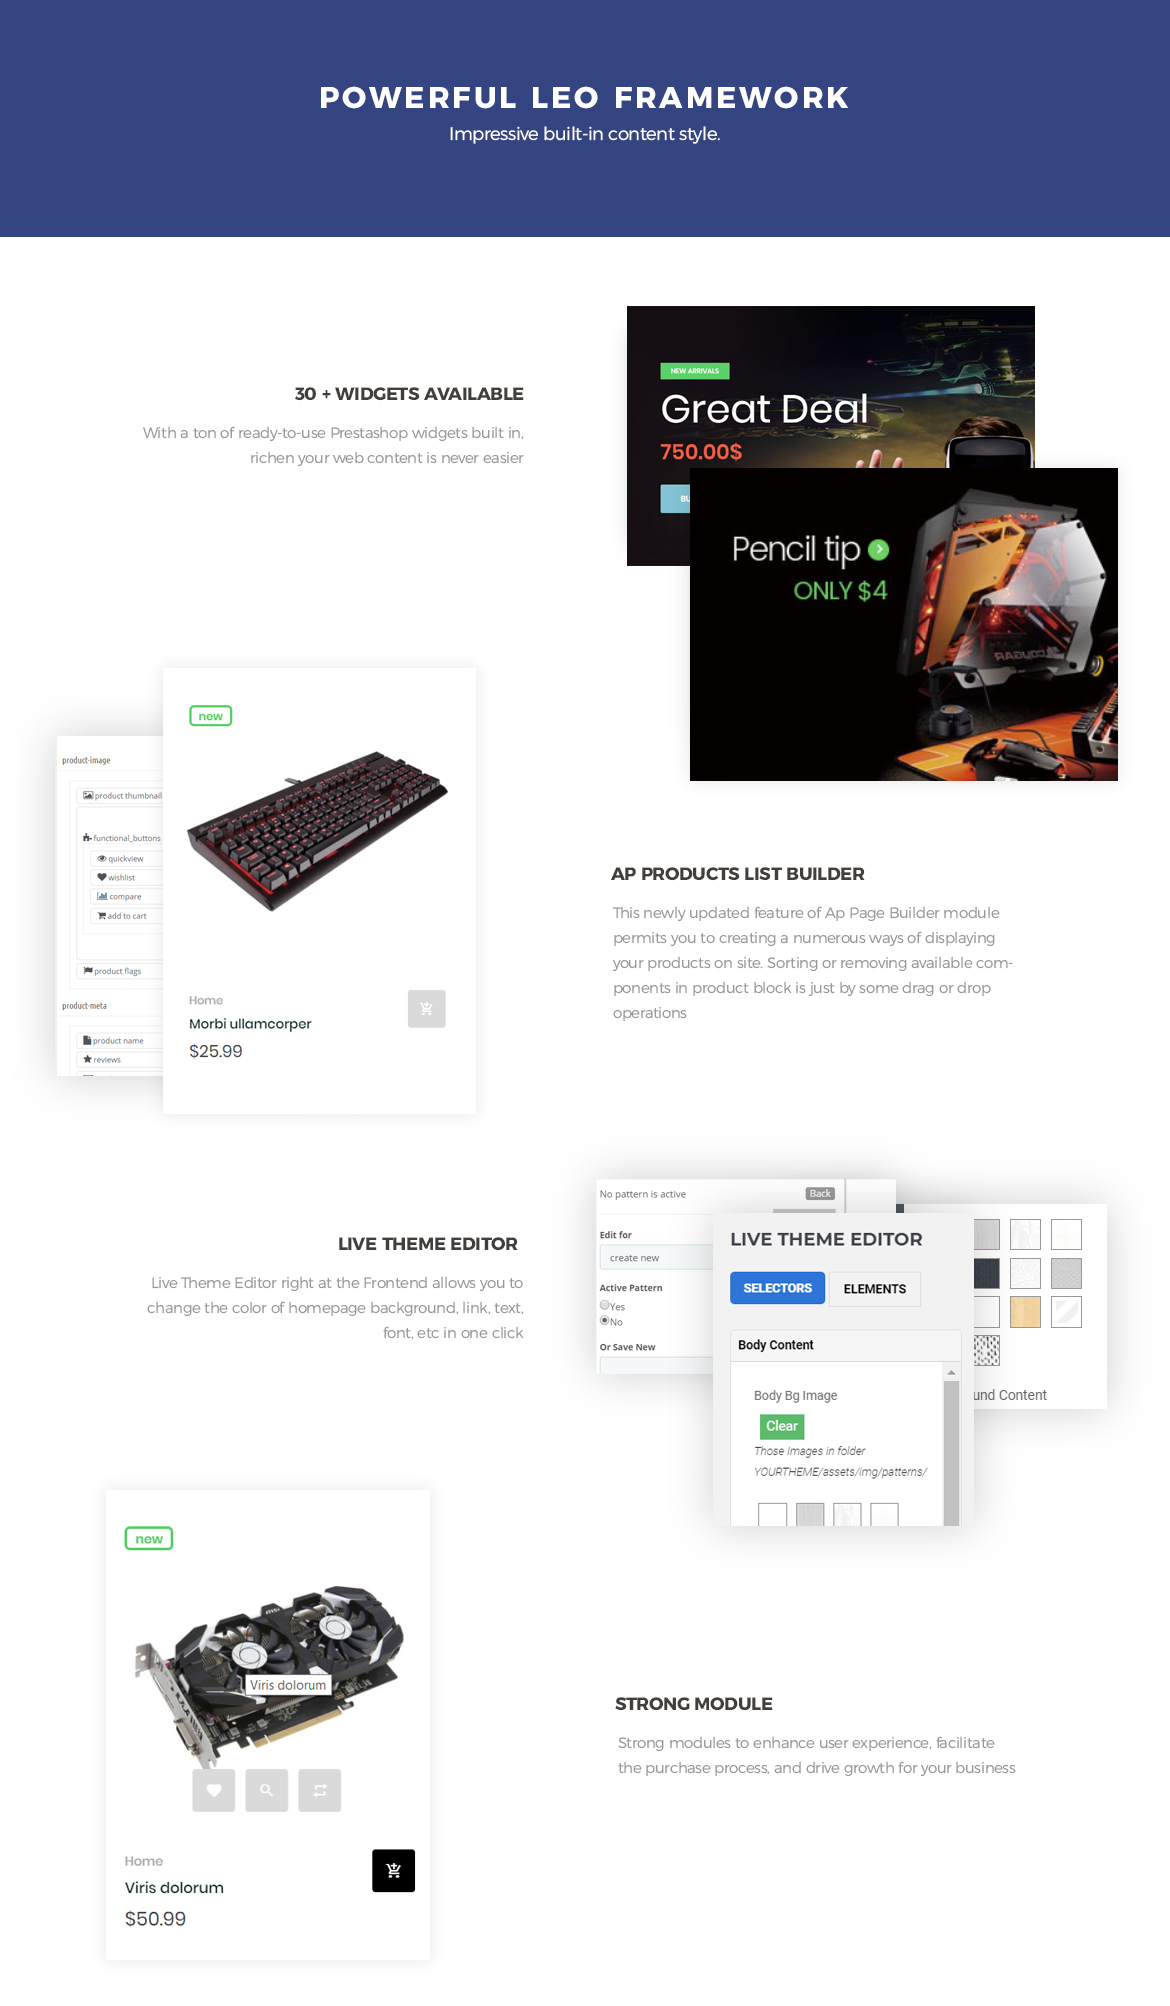 Powerful Leo Framework - Bos Atari Gaming Prestashop theme